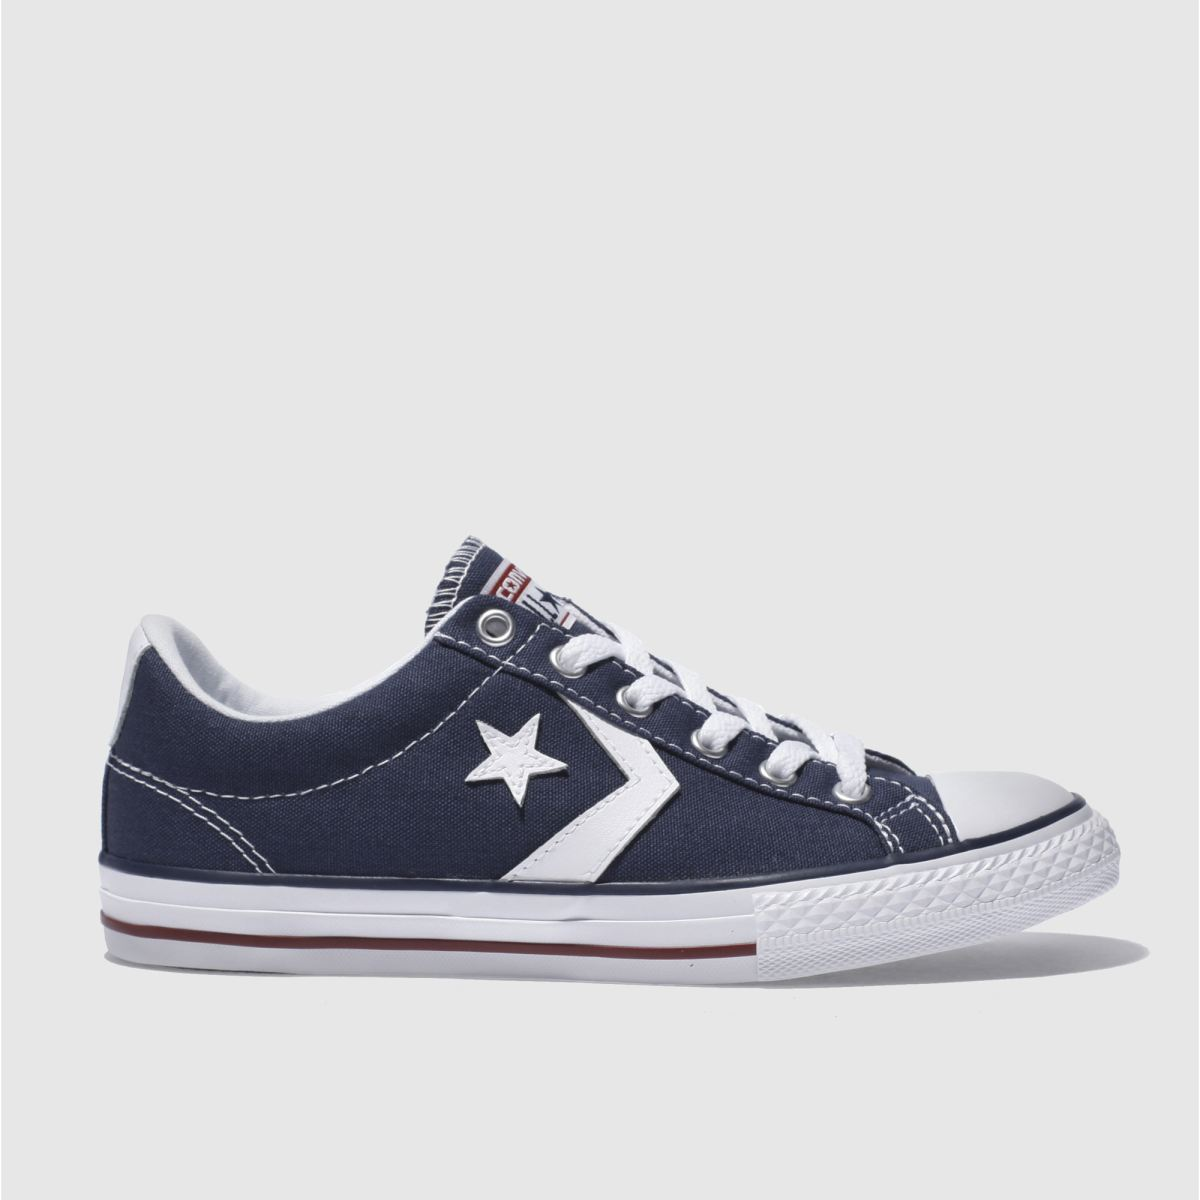 converse navy & white star player oxford Boys Youth Trainers